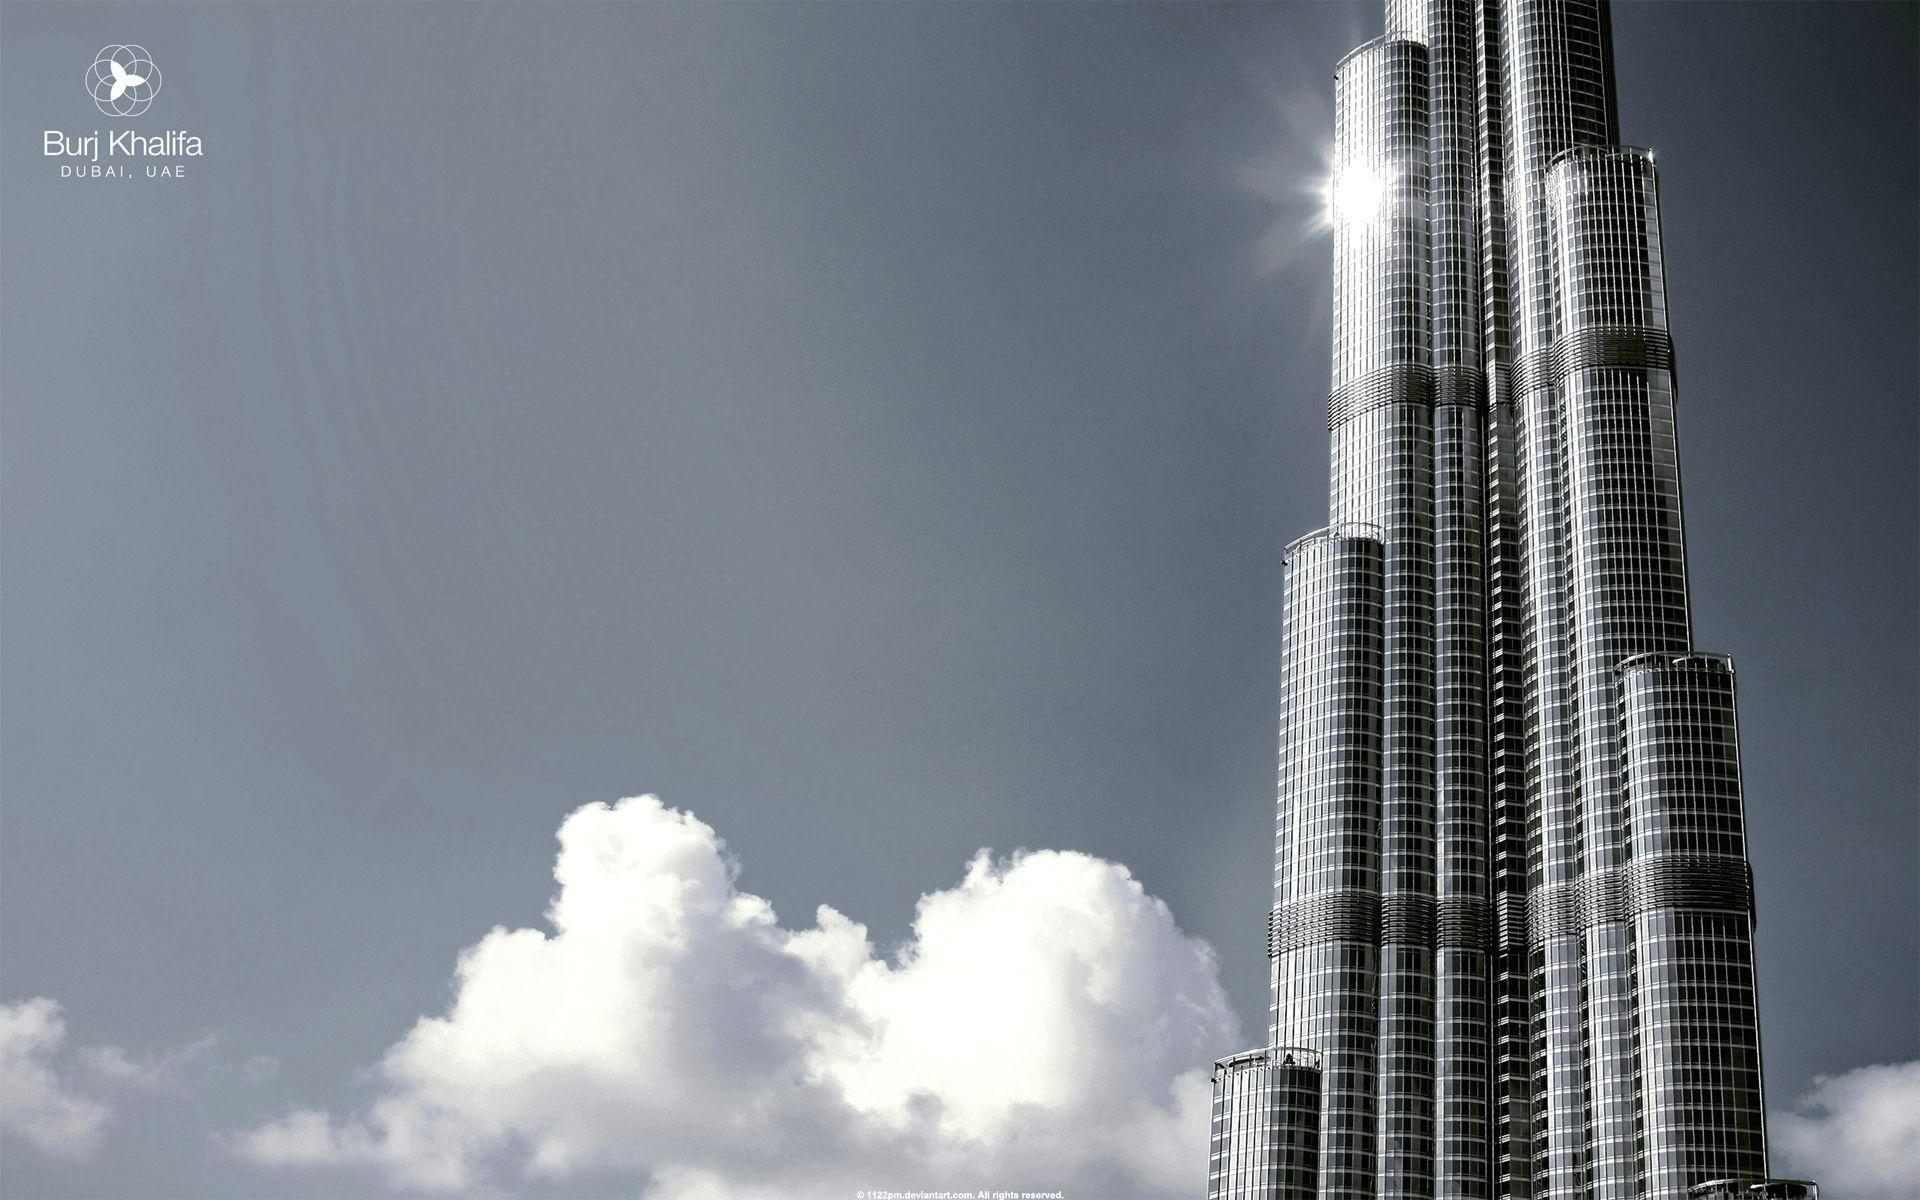 Collection of Burj Khalifa Desktop Wallpapers on HDWallpapers